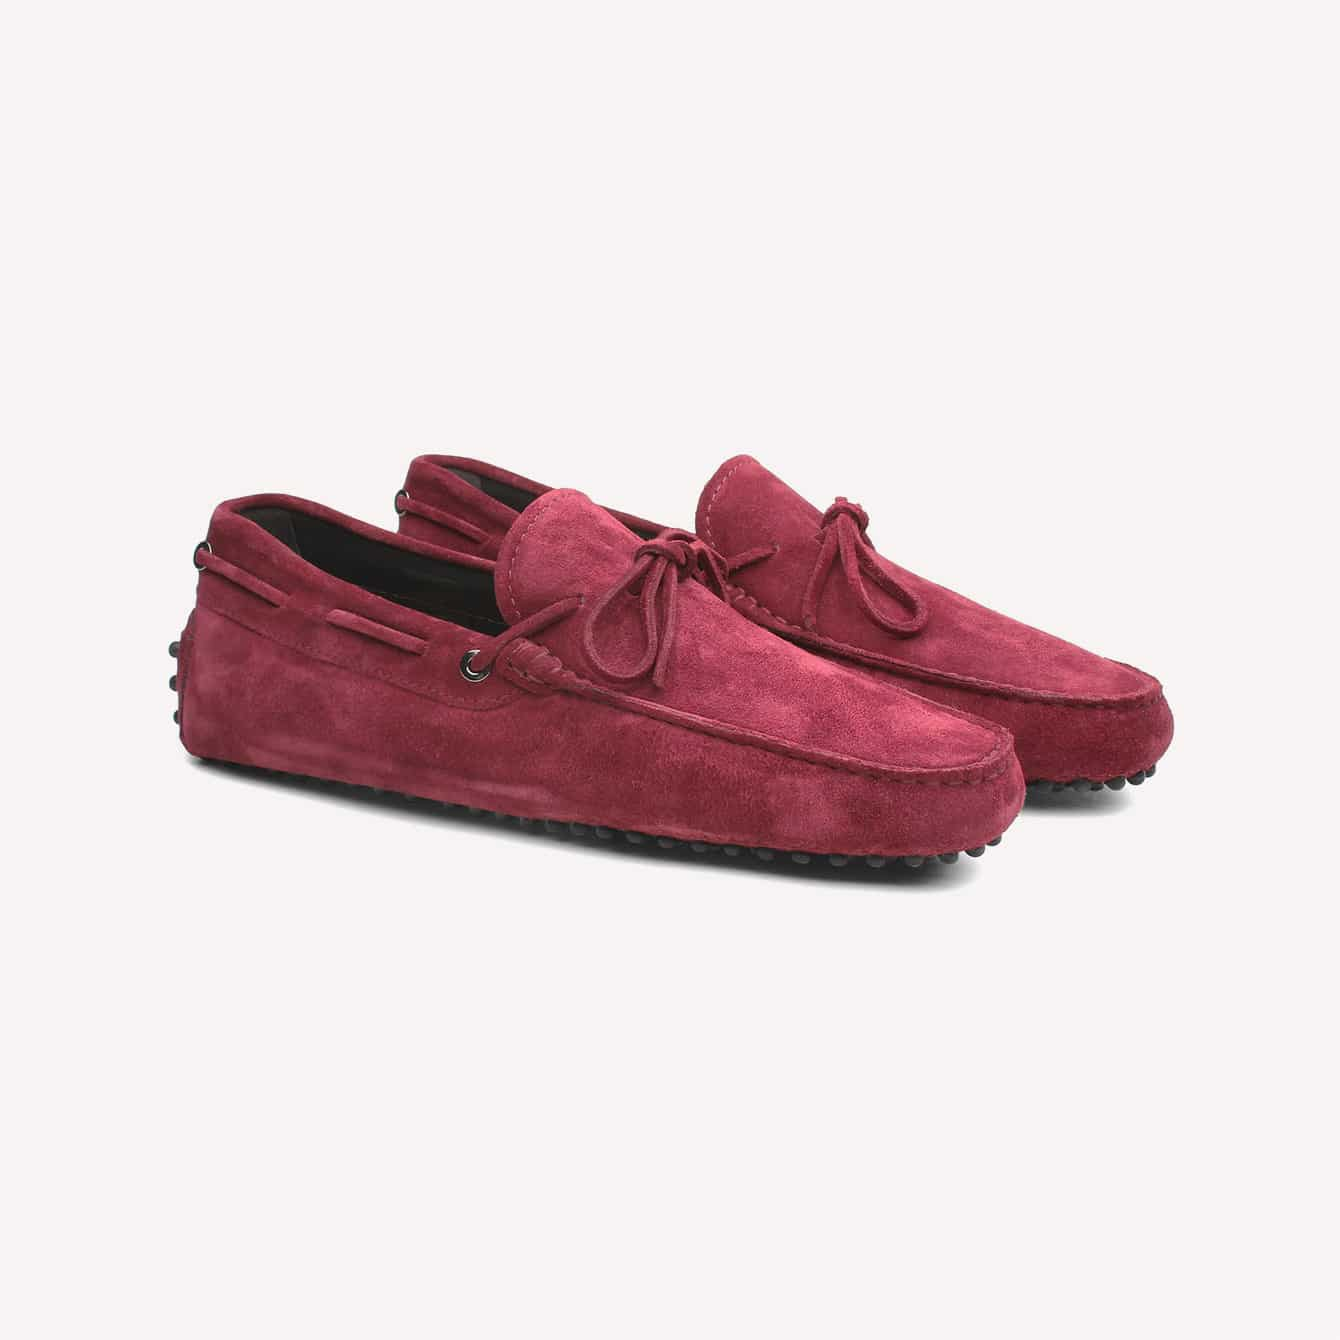 Aurelien Classic Gommino Driving Shoes Loafer Men Suede burgundy loafers drivingshoes